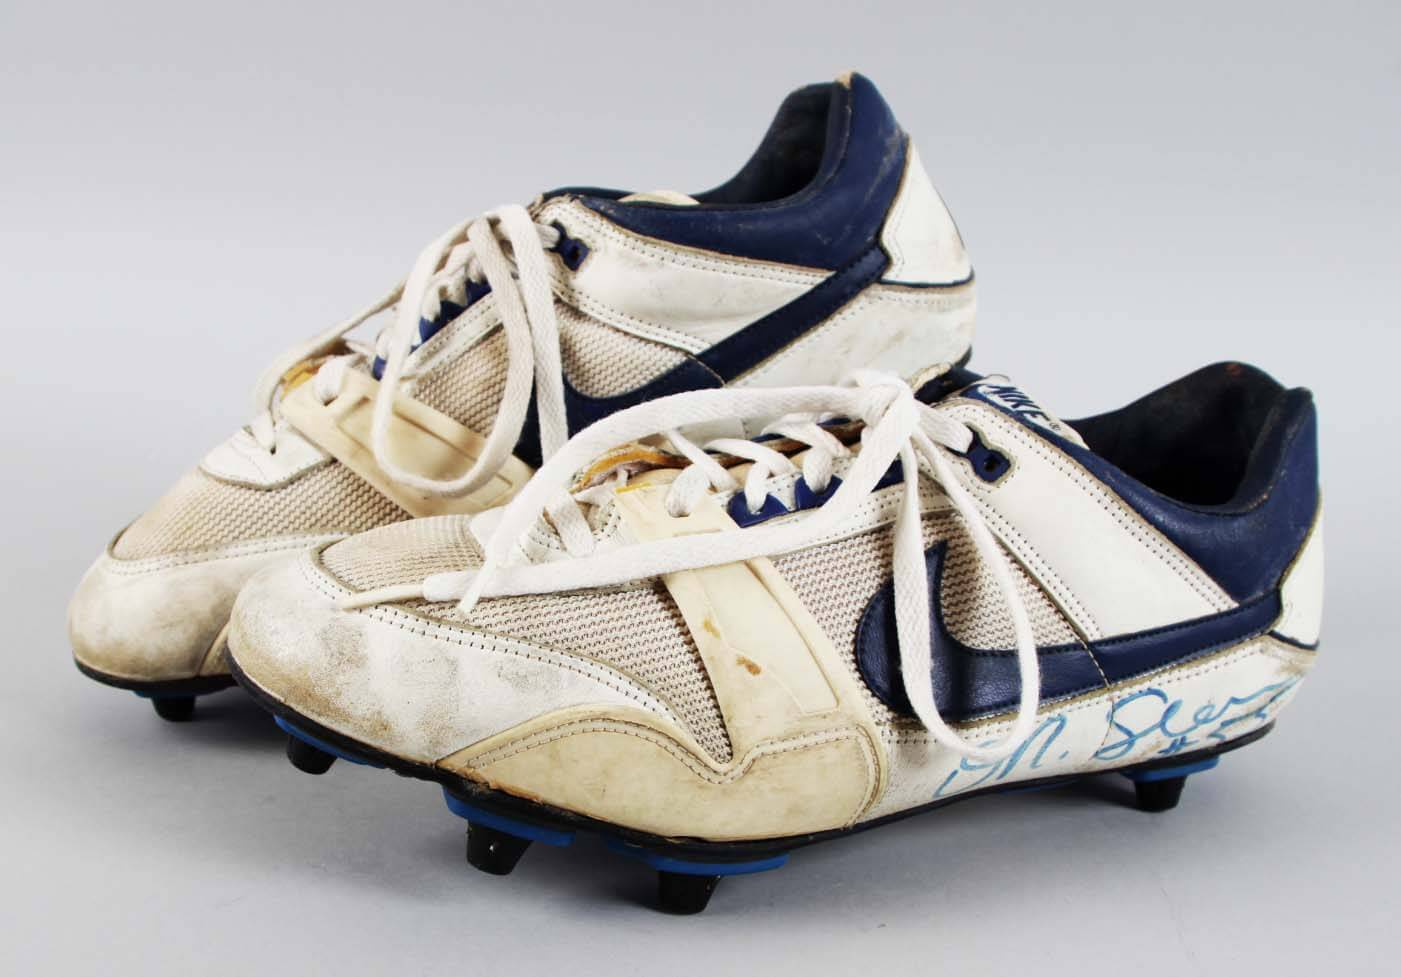 low priced c7984 3bce7 San Diego Chargers - Junior Seau Game-Worn, Signed Cleats Super Bowl XXIX -  JSA Full LOA